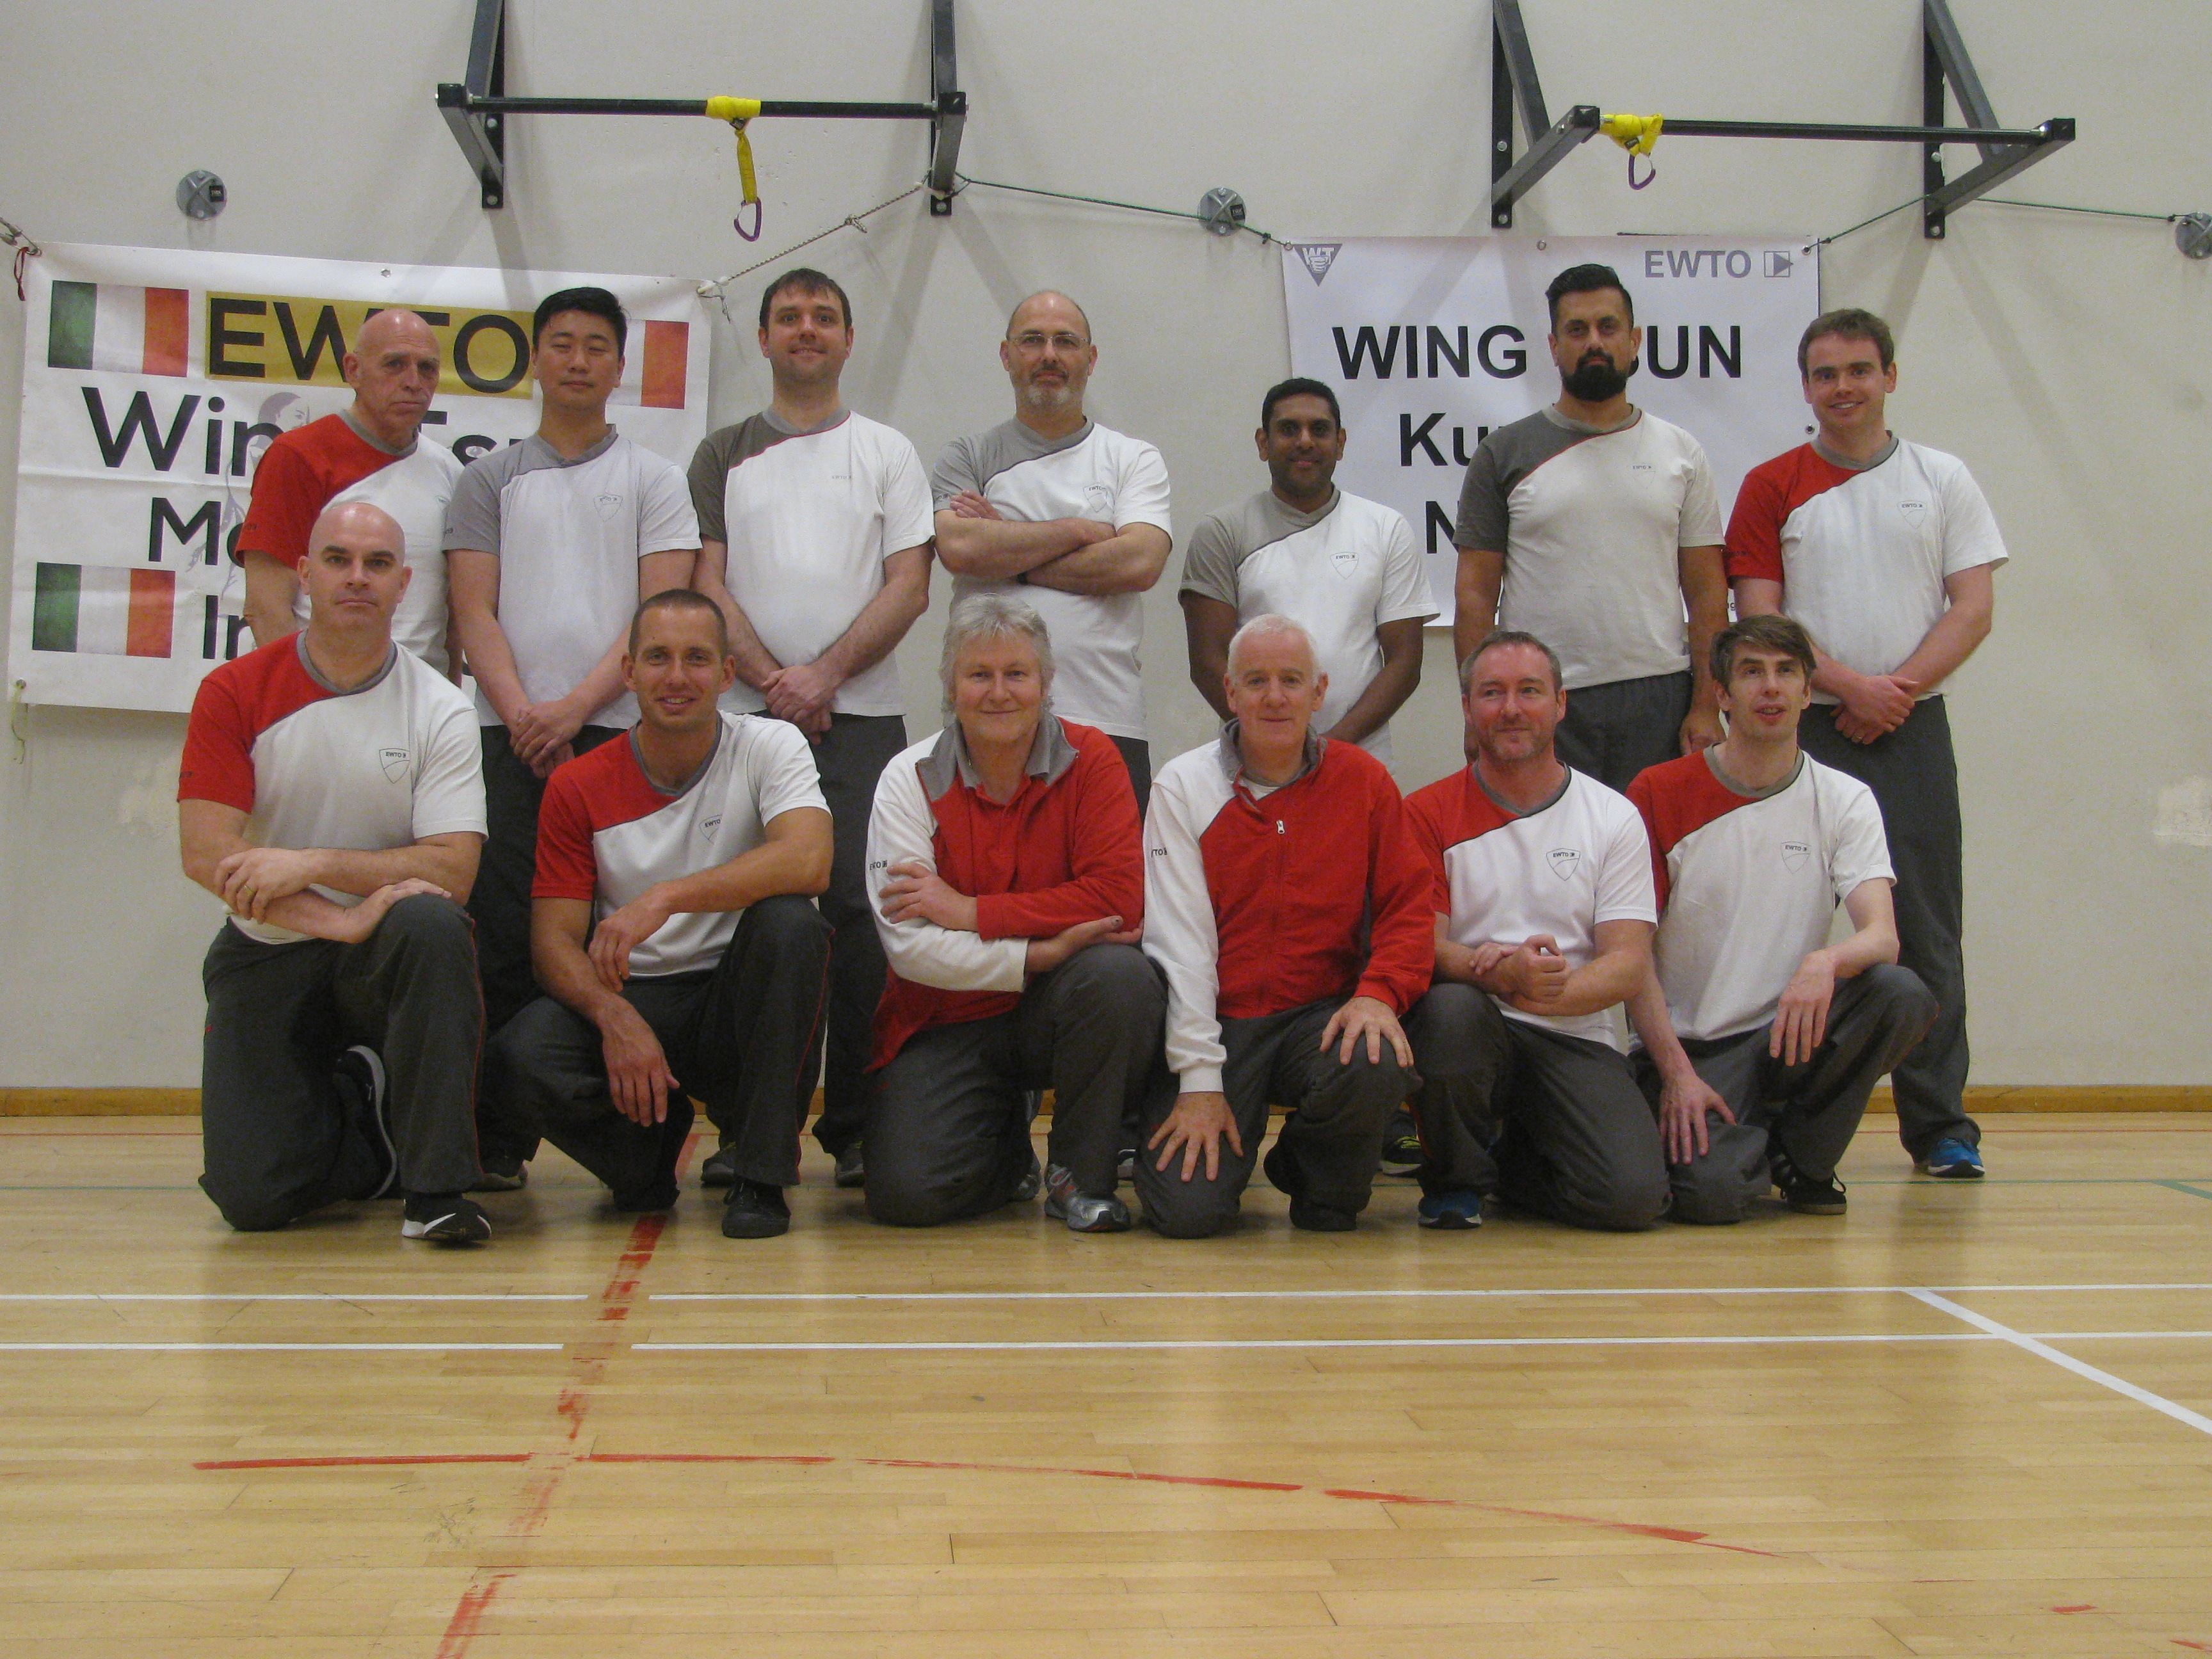 Sifu Tausend and Sifu Canavan with the attendees of the Instructor seminar